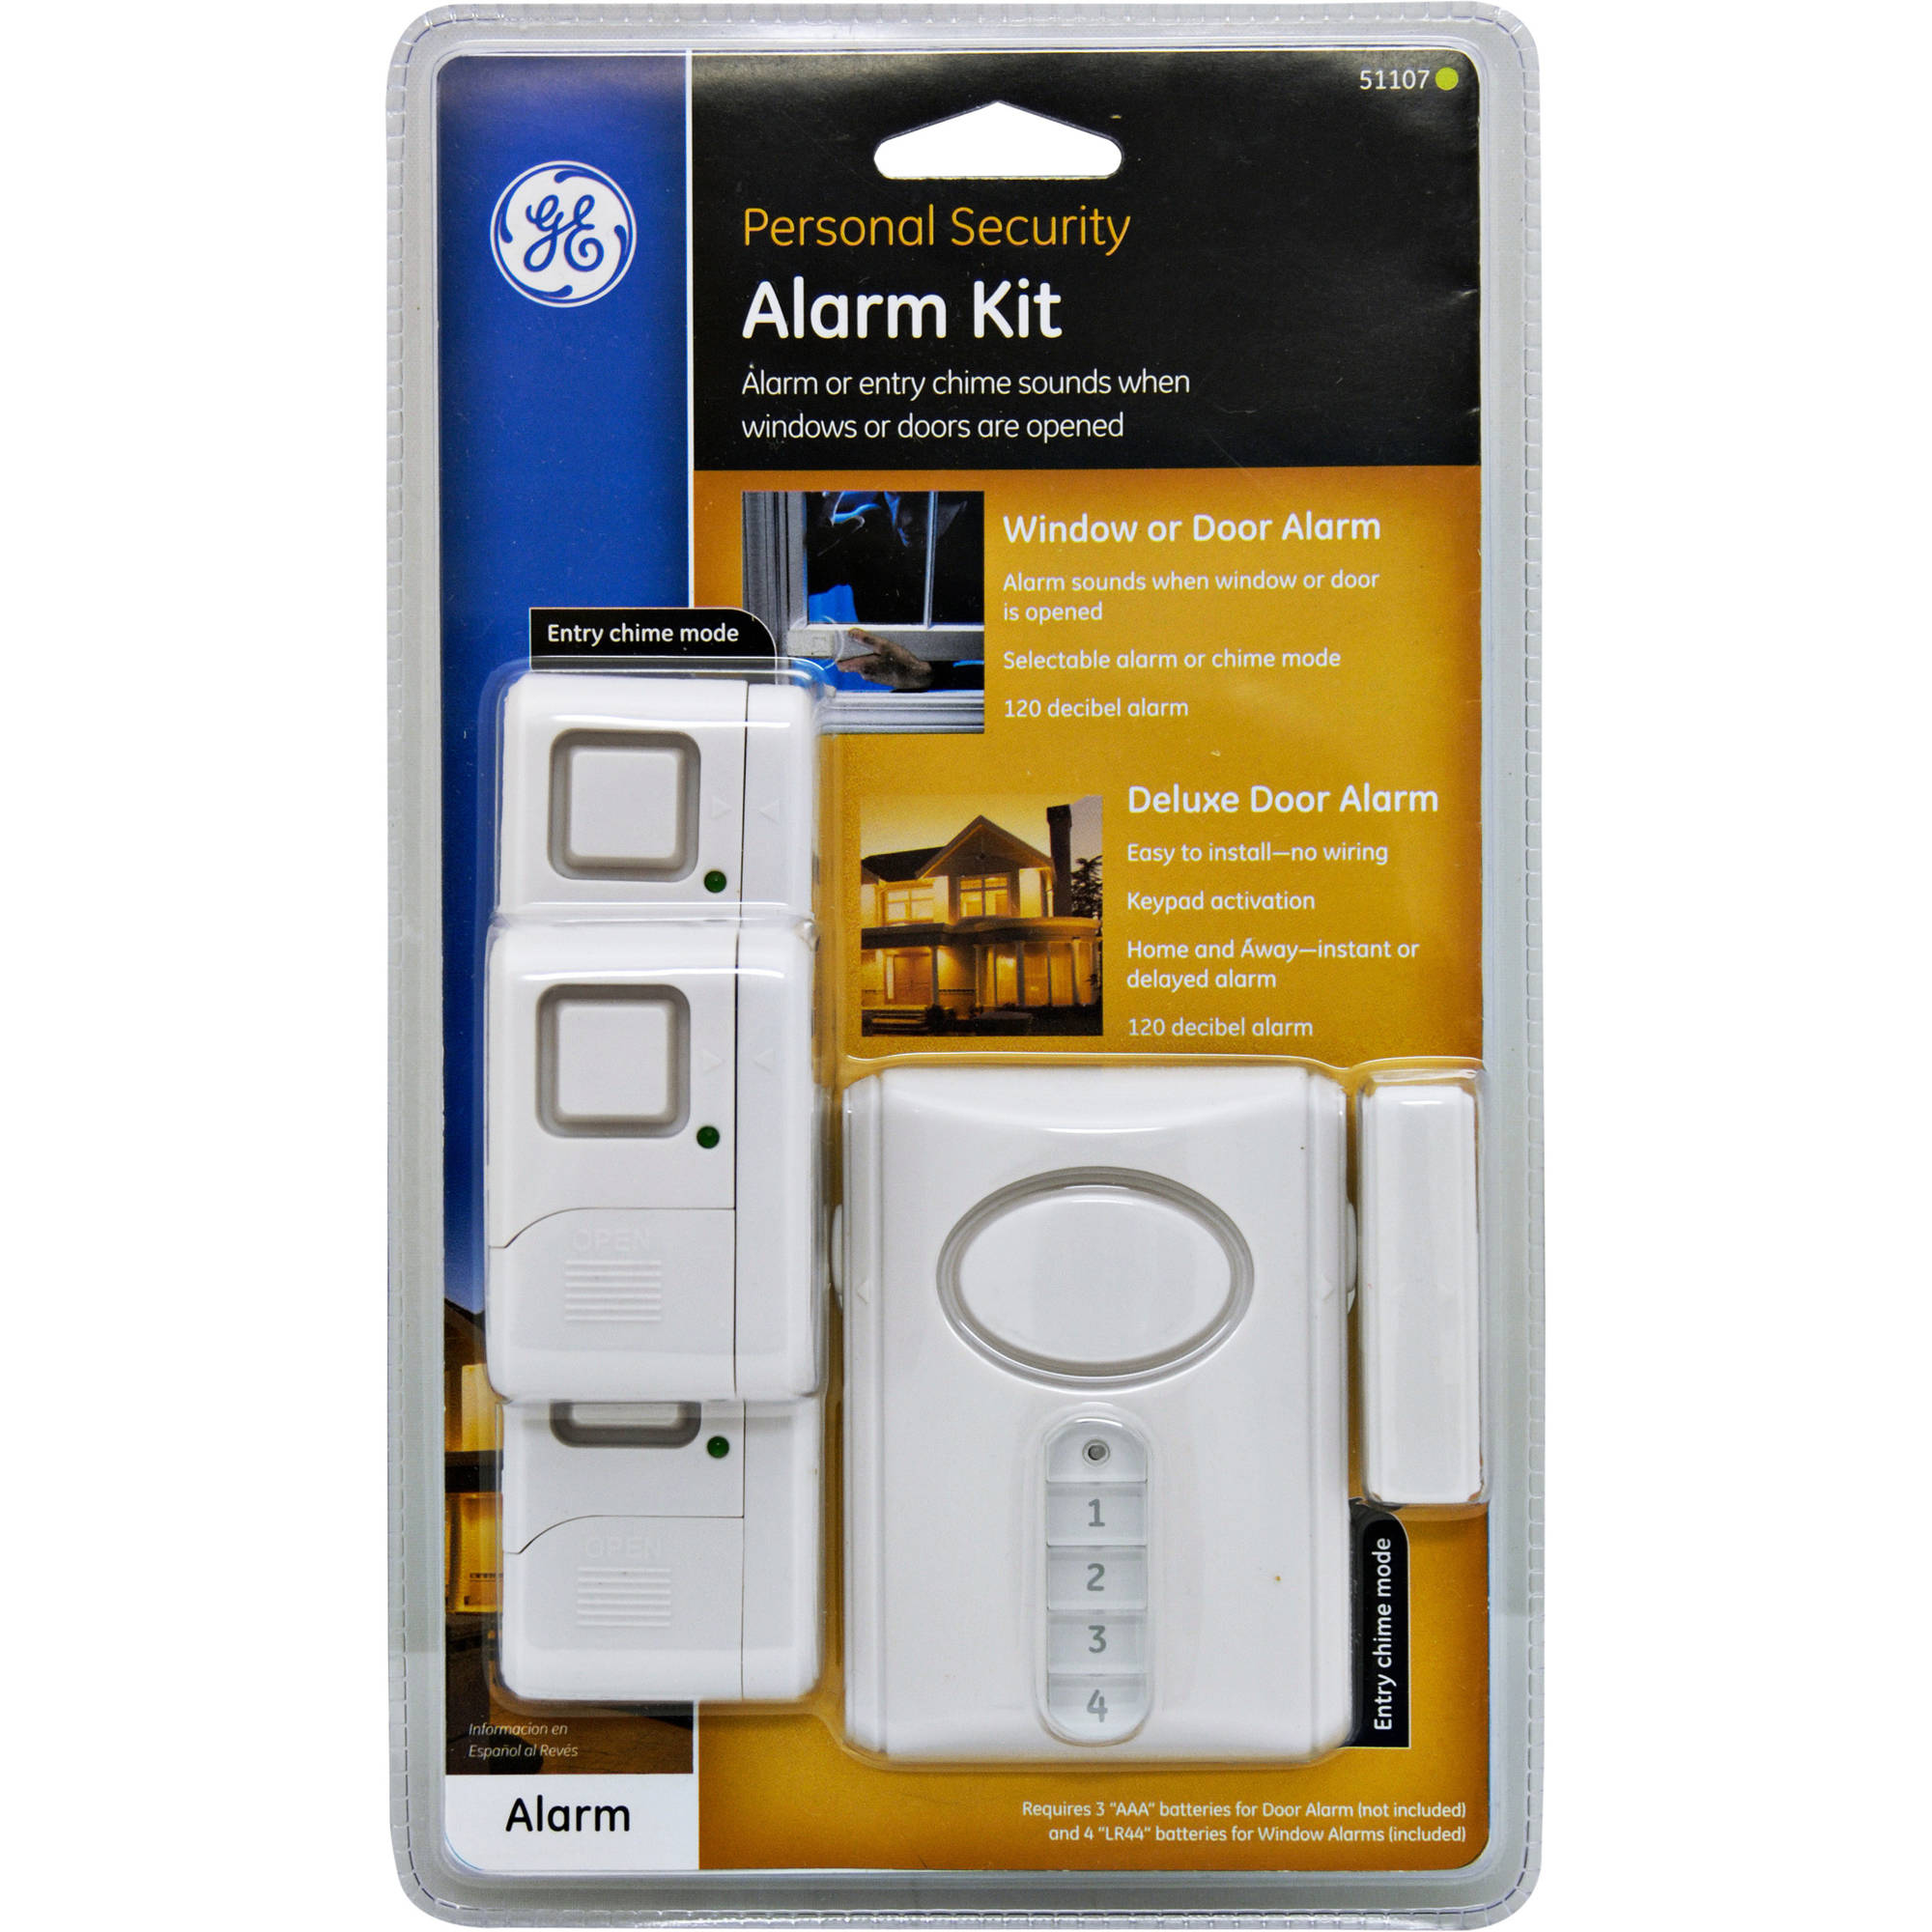 51107 Personal Security Window Door Wireless Alarm System. Fiberglass Shed Doors. Walk In Freezer Door Heater. Garage Door Repair Lexington Ky. Glass Door Kitchen Cabinets. 3 4 Horsepower Garage Door Opener. Andersen 200 Series Patio Door. Decorative Sliding Doors. Reznor Garage Heaters Calgary